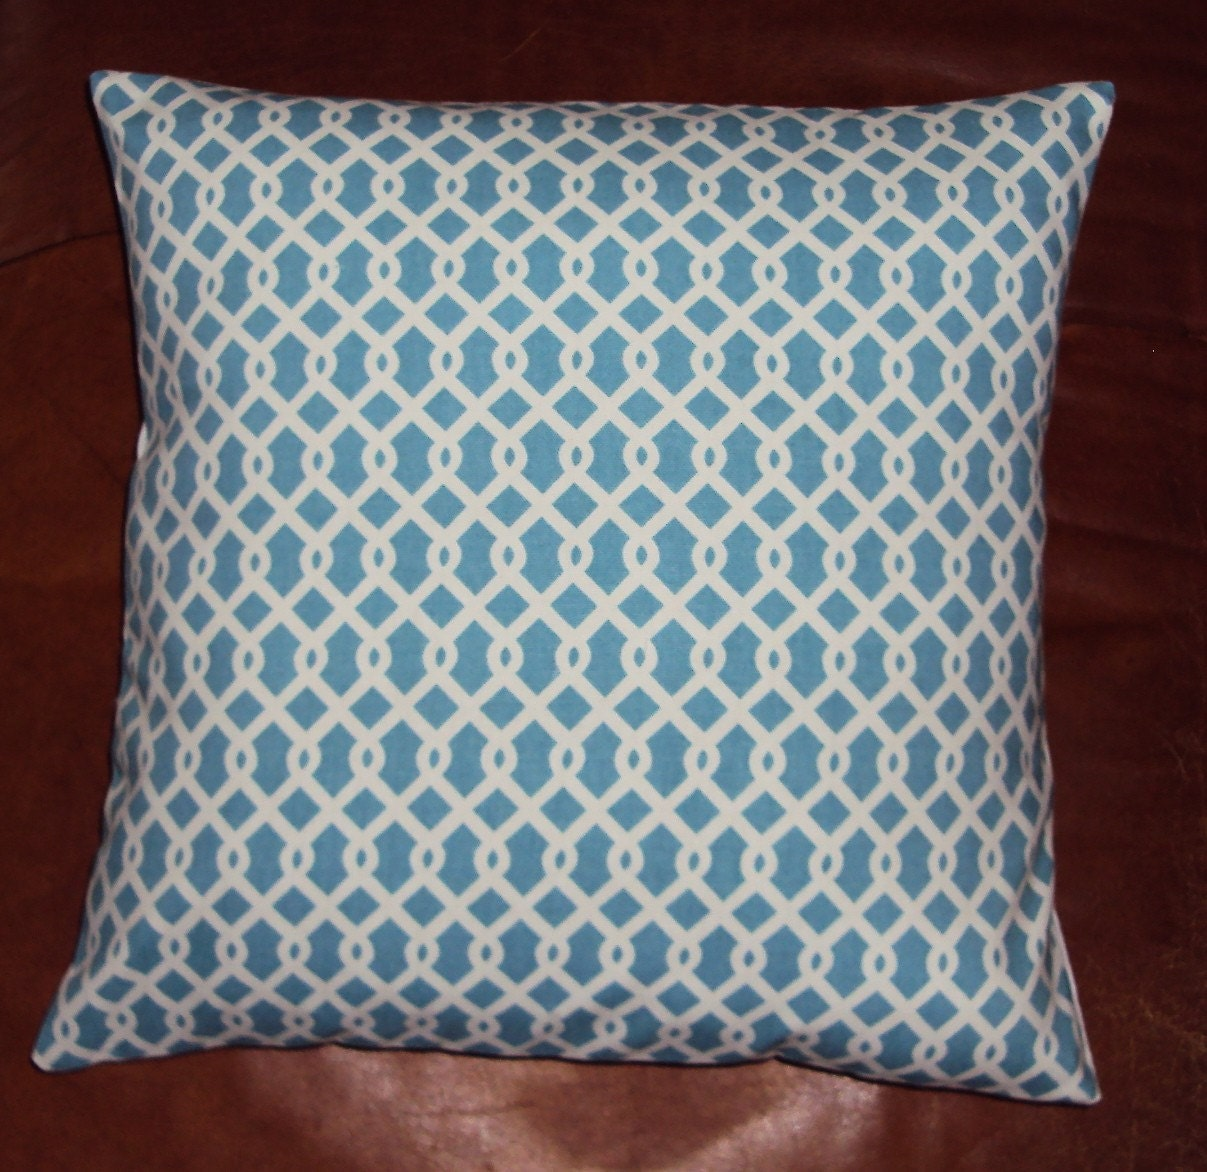 Light Turquoise Blue Waverly Lattice Pillow Cover - FREE SHIPPING